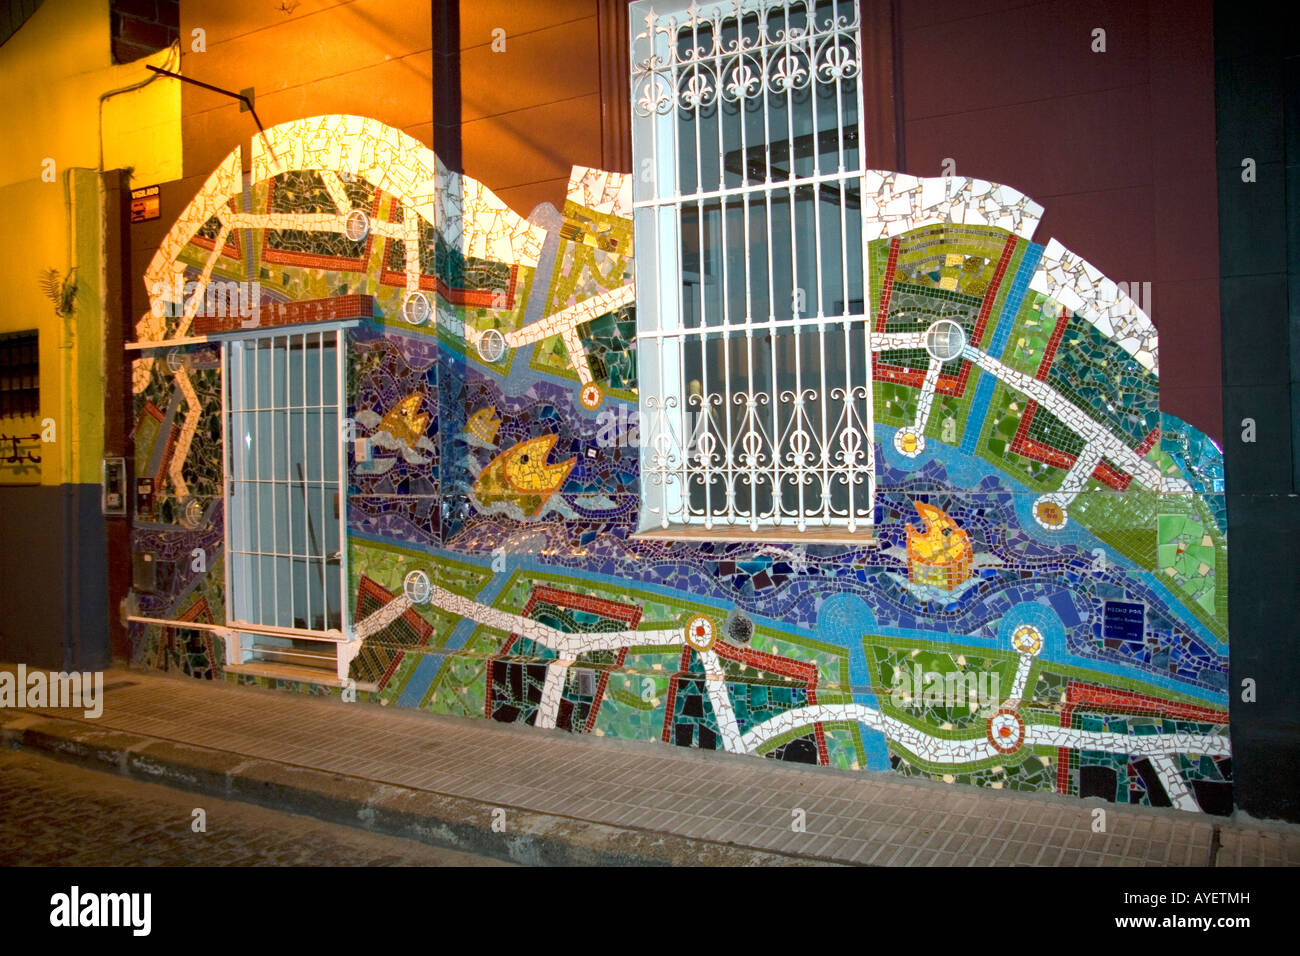 Mosaic mural on the side of a building in Buenos Aires Argentina Stock Photo